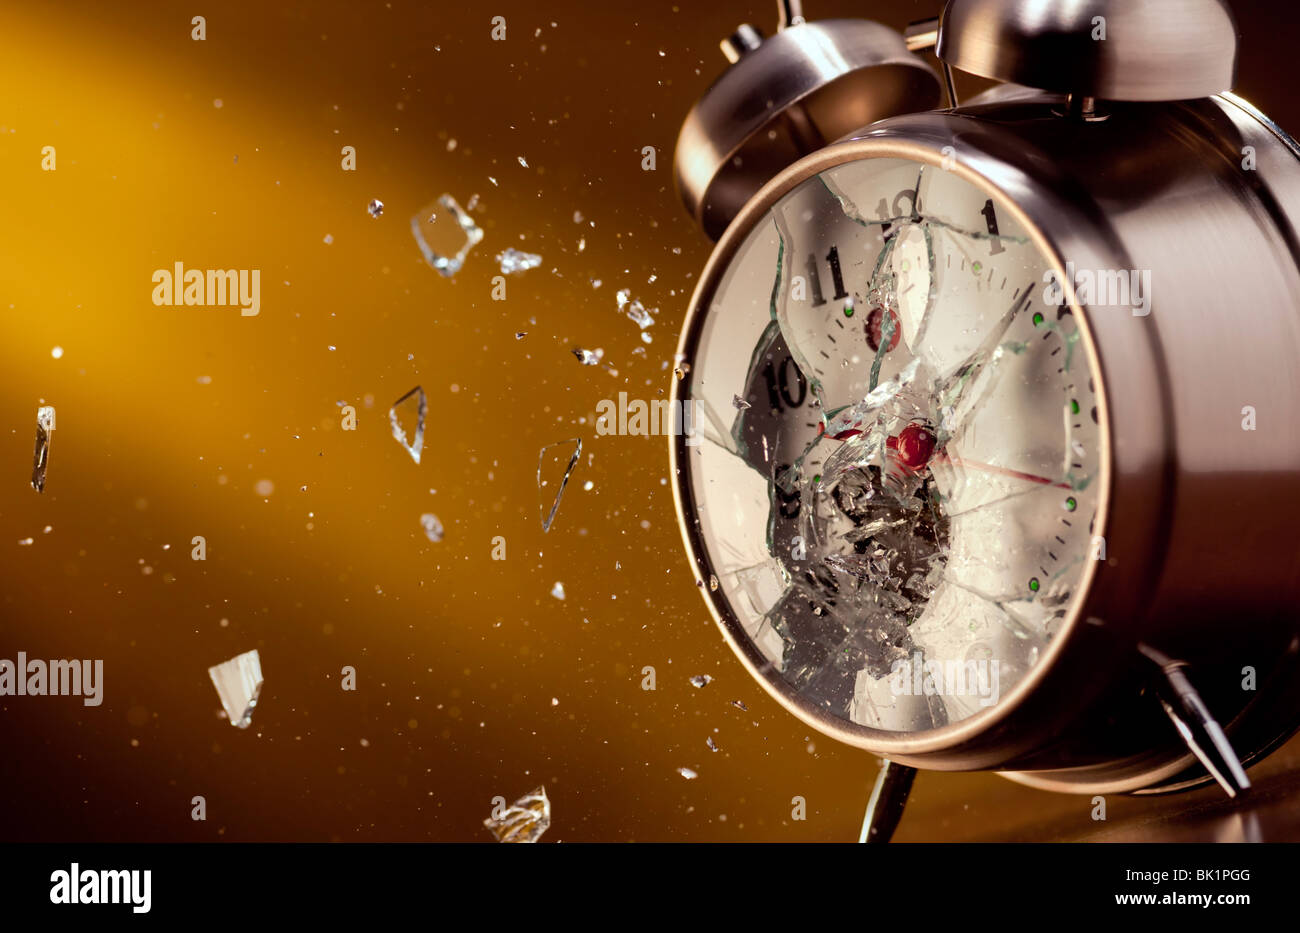 Alarm clock shattered by a bullet - Stock Image